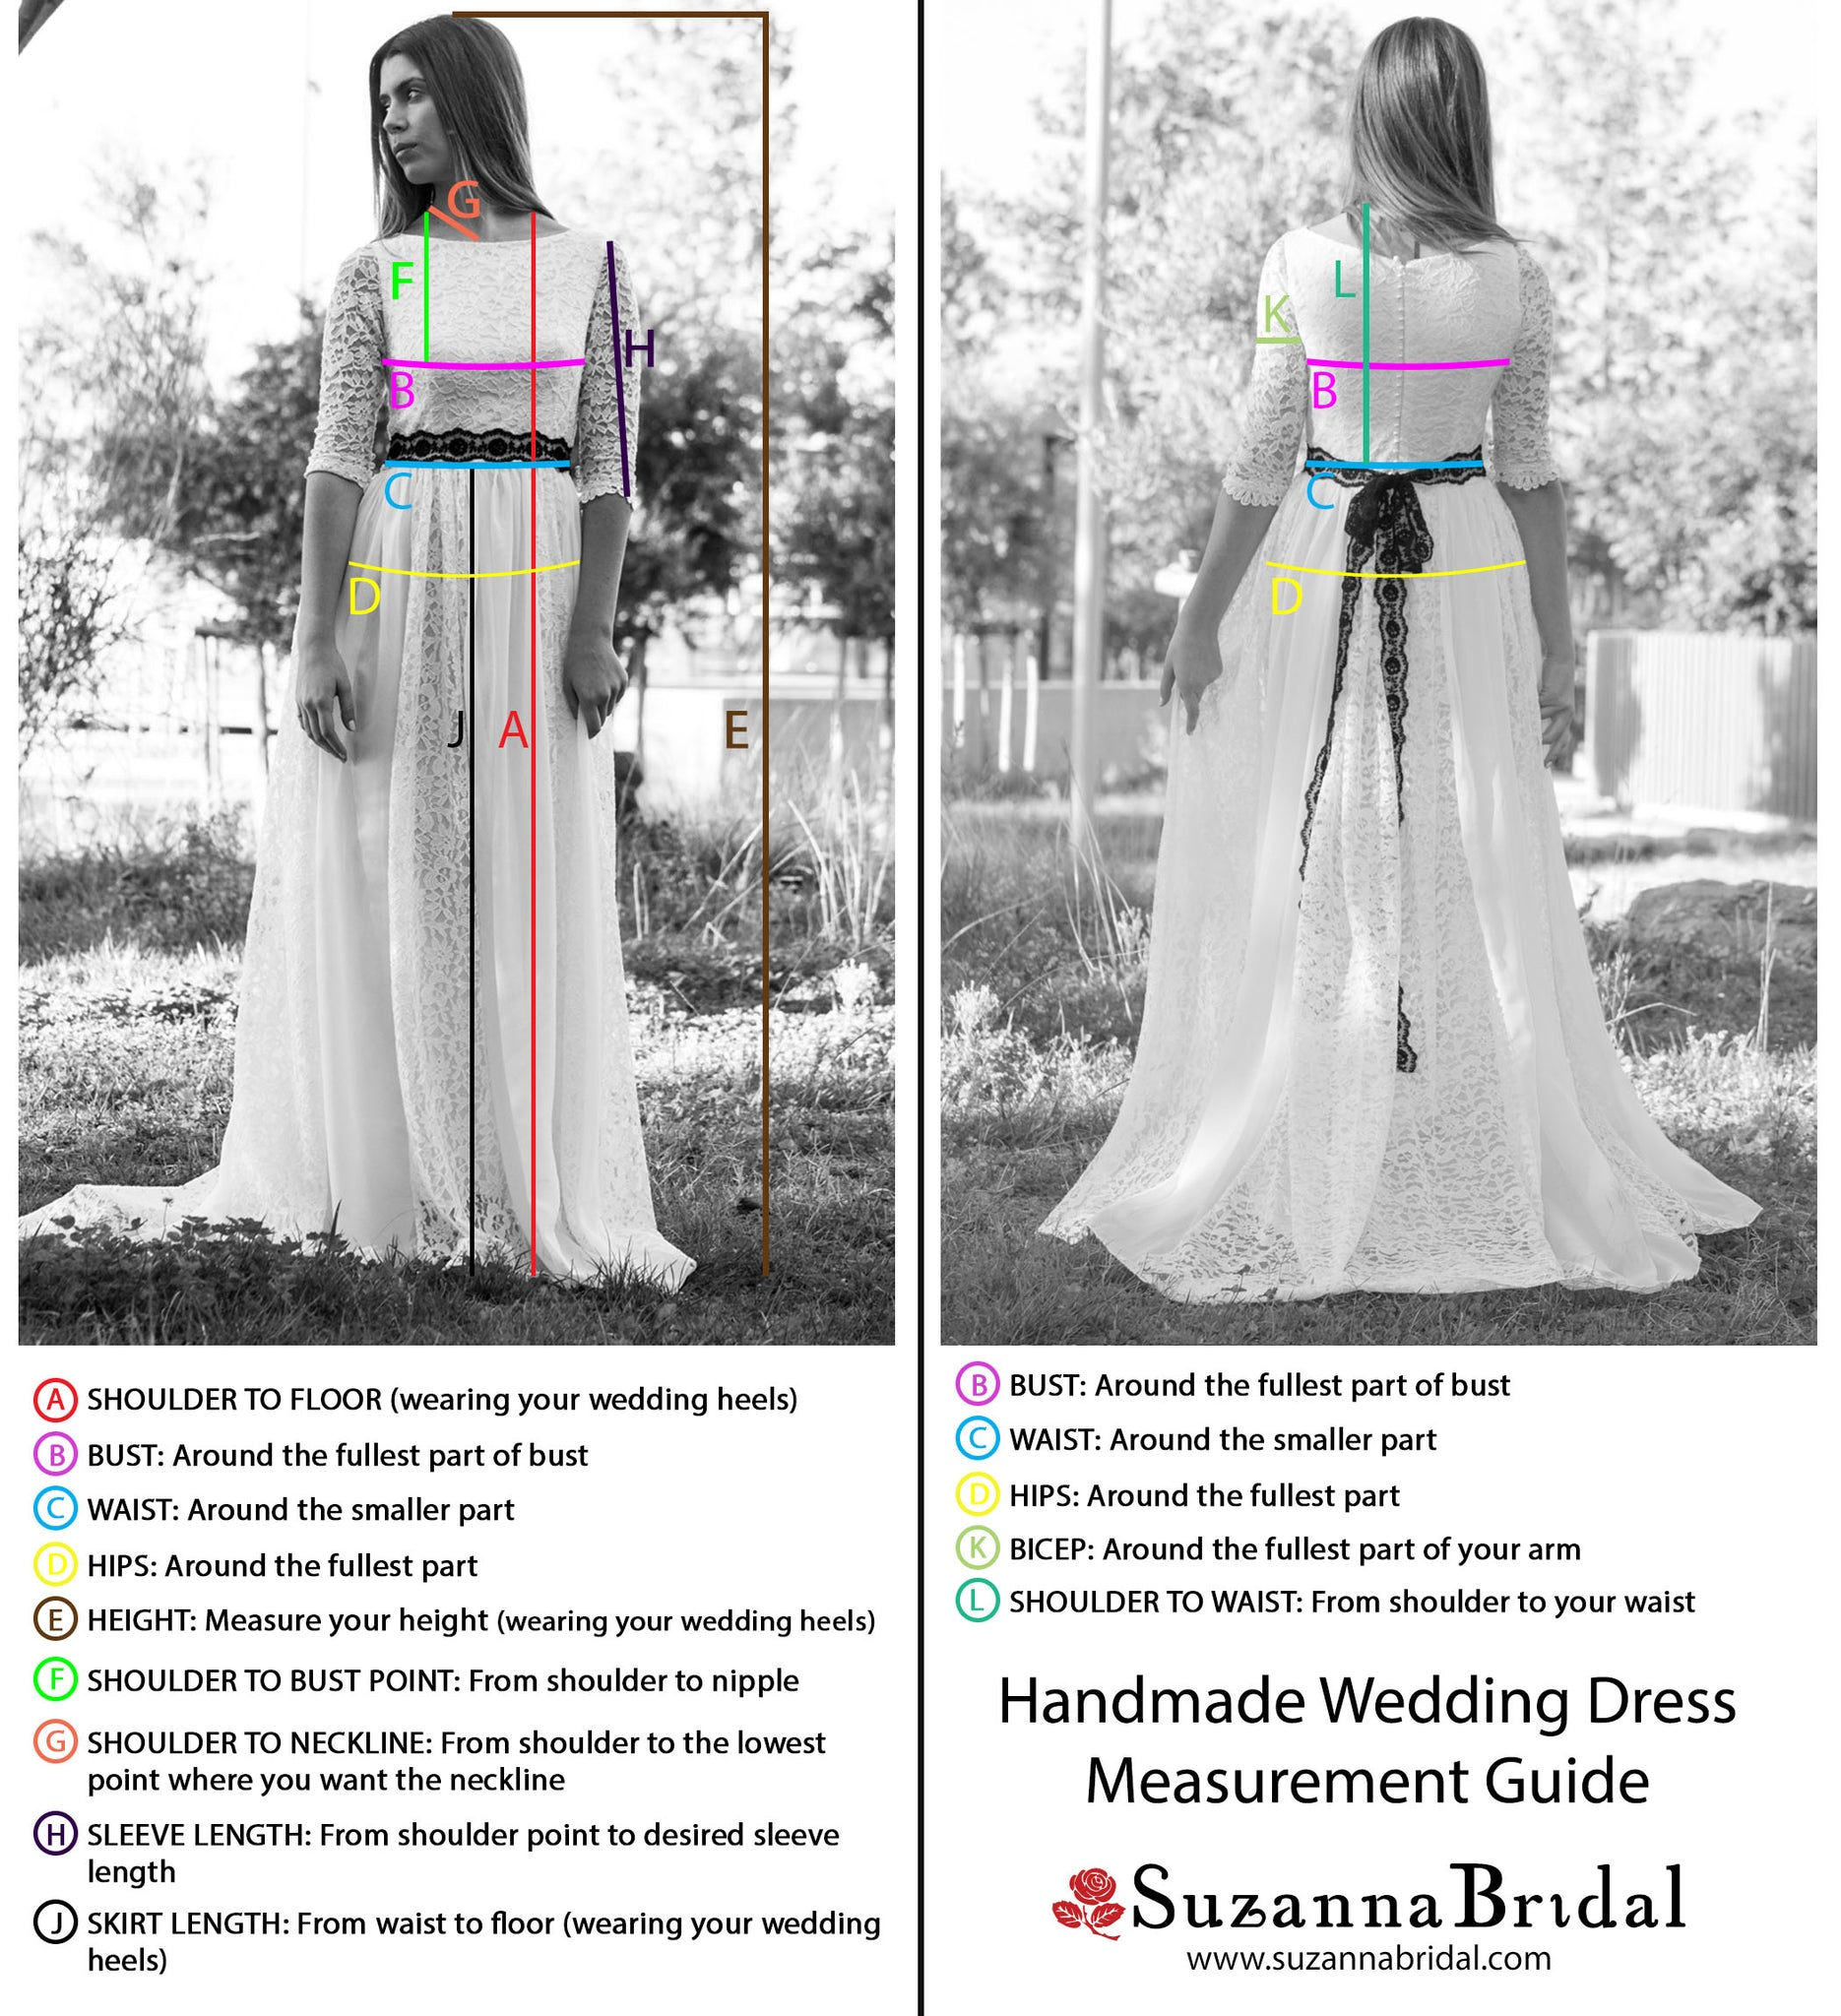 Suzanna Bridal Wedding Dress Measurement Guide